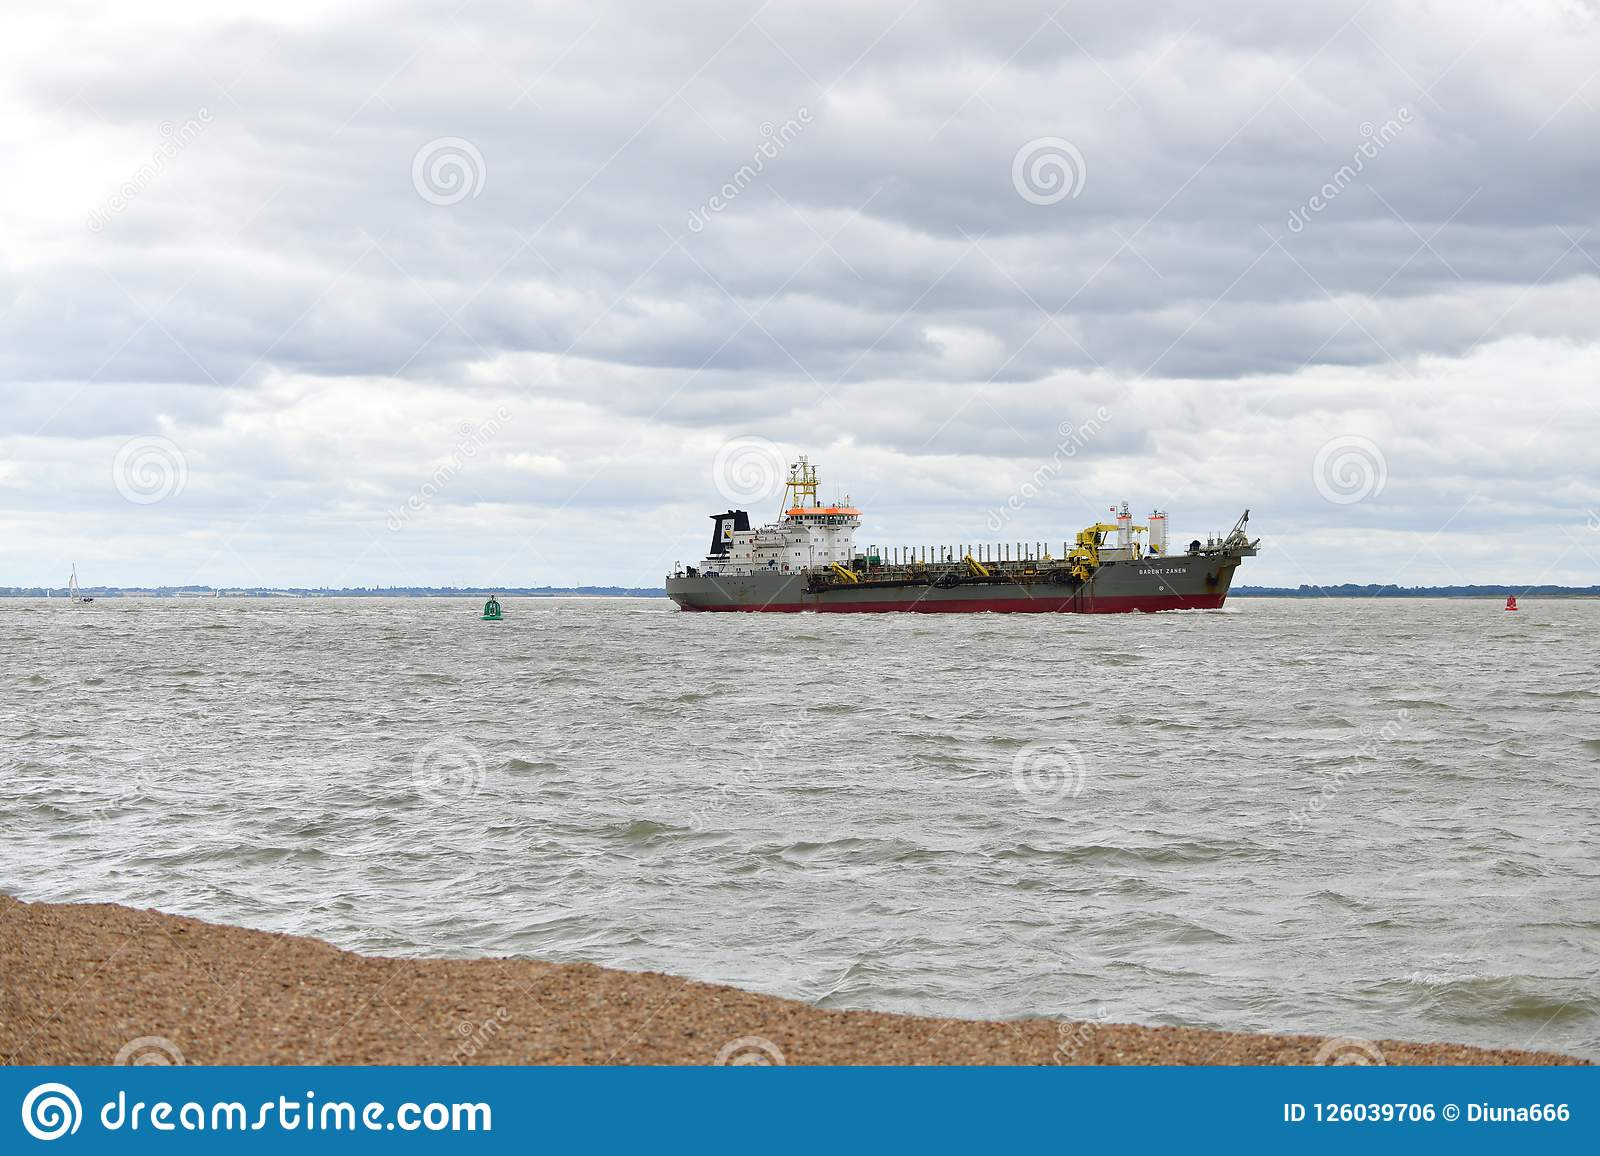 Port in Felixstowe UK, ship dredge